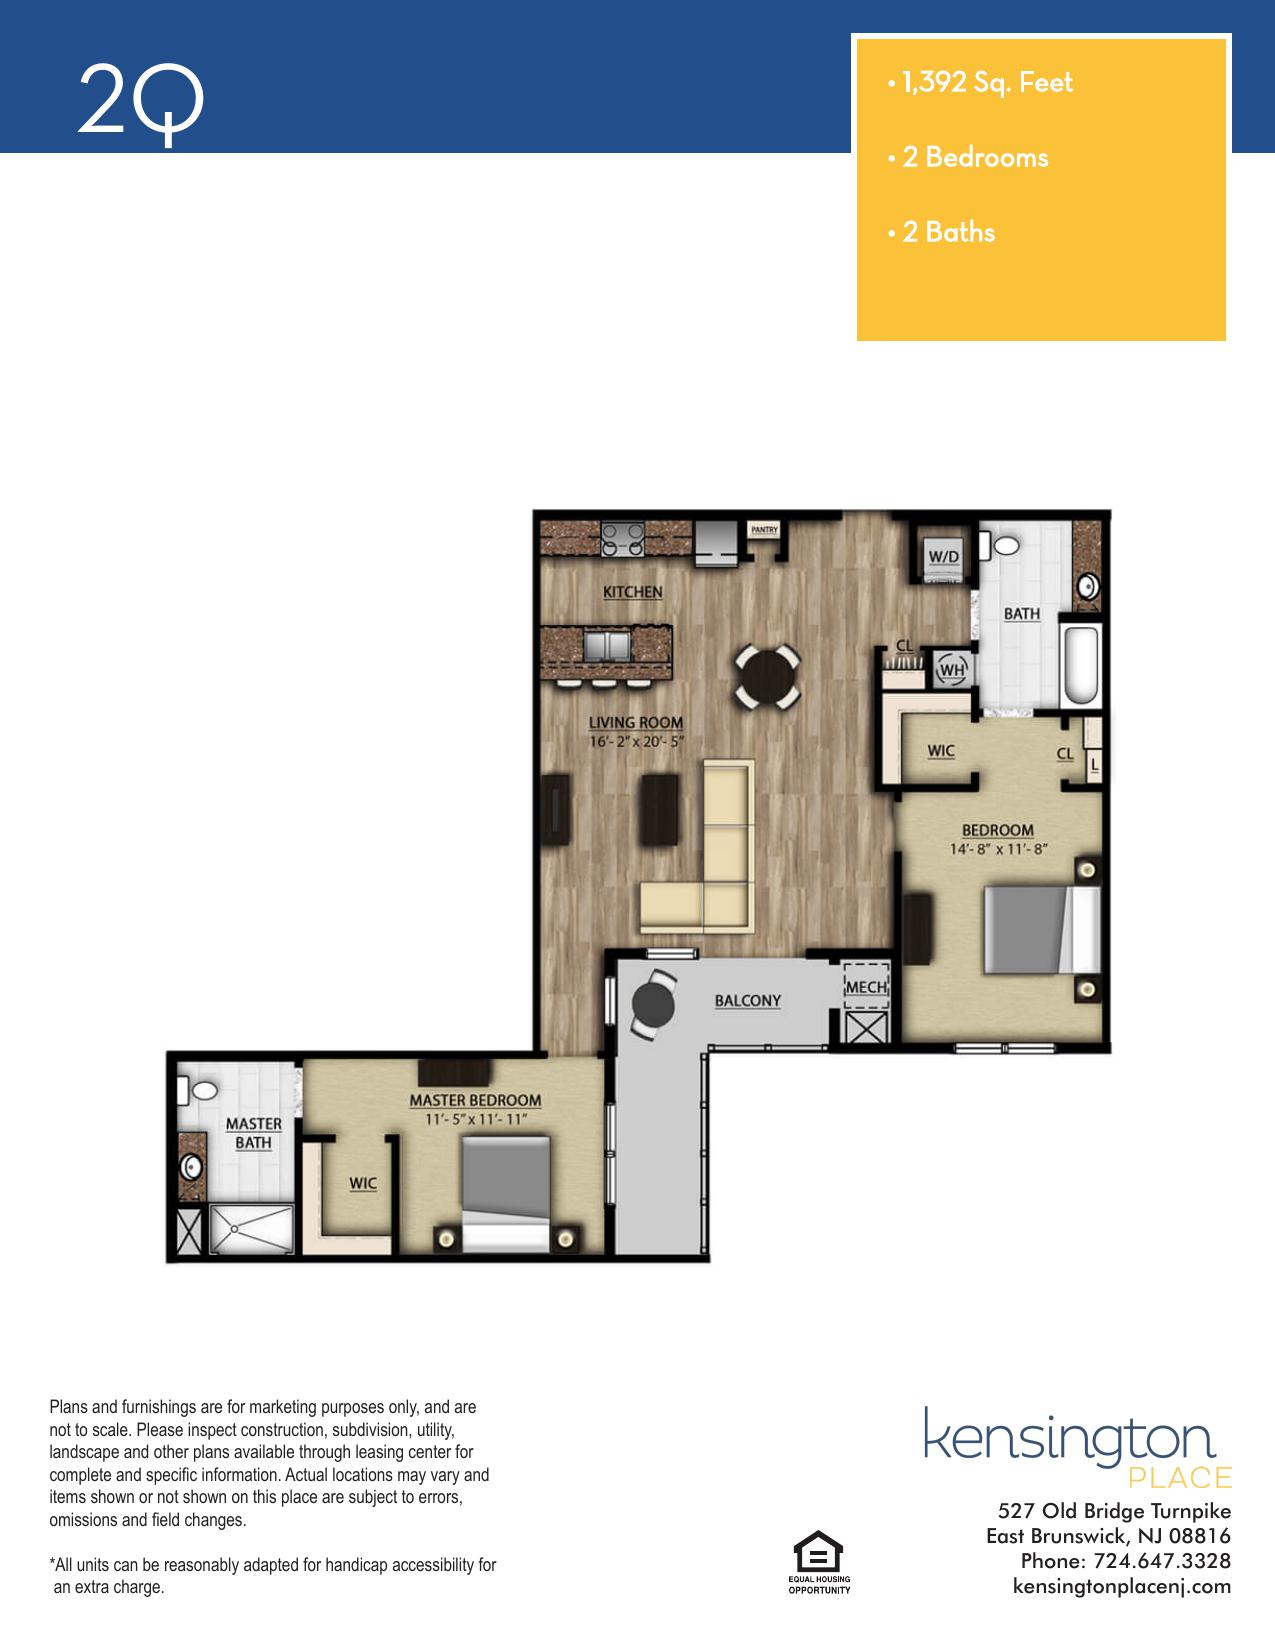 Kensington Place Apartment Floor Plan 2Q